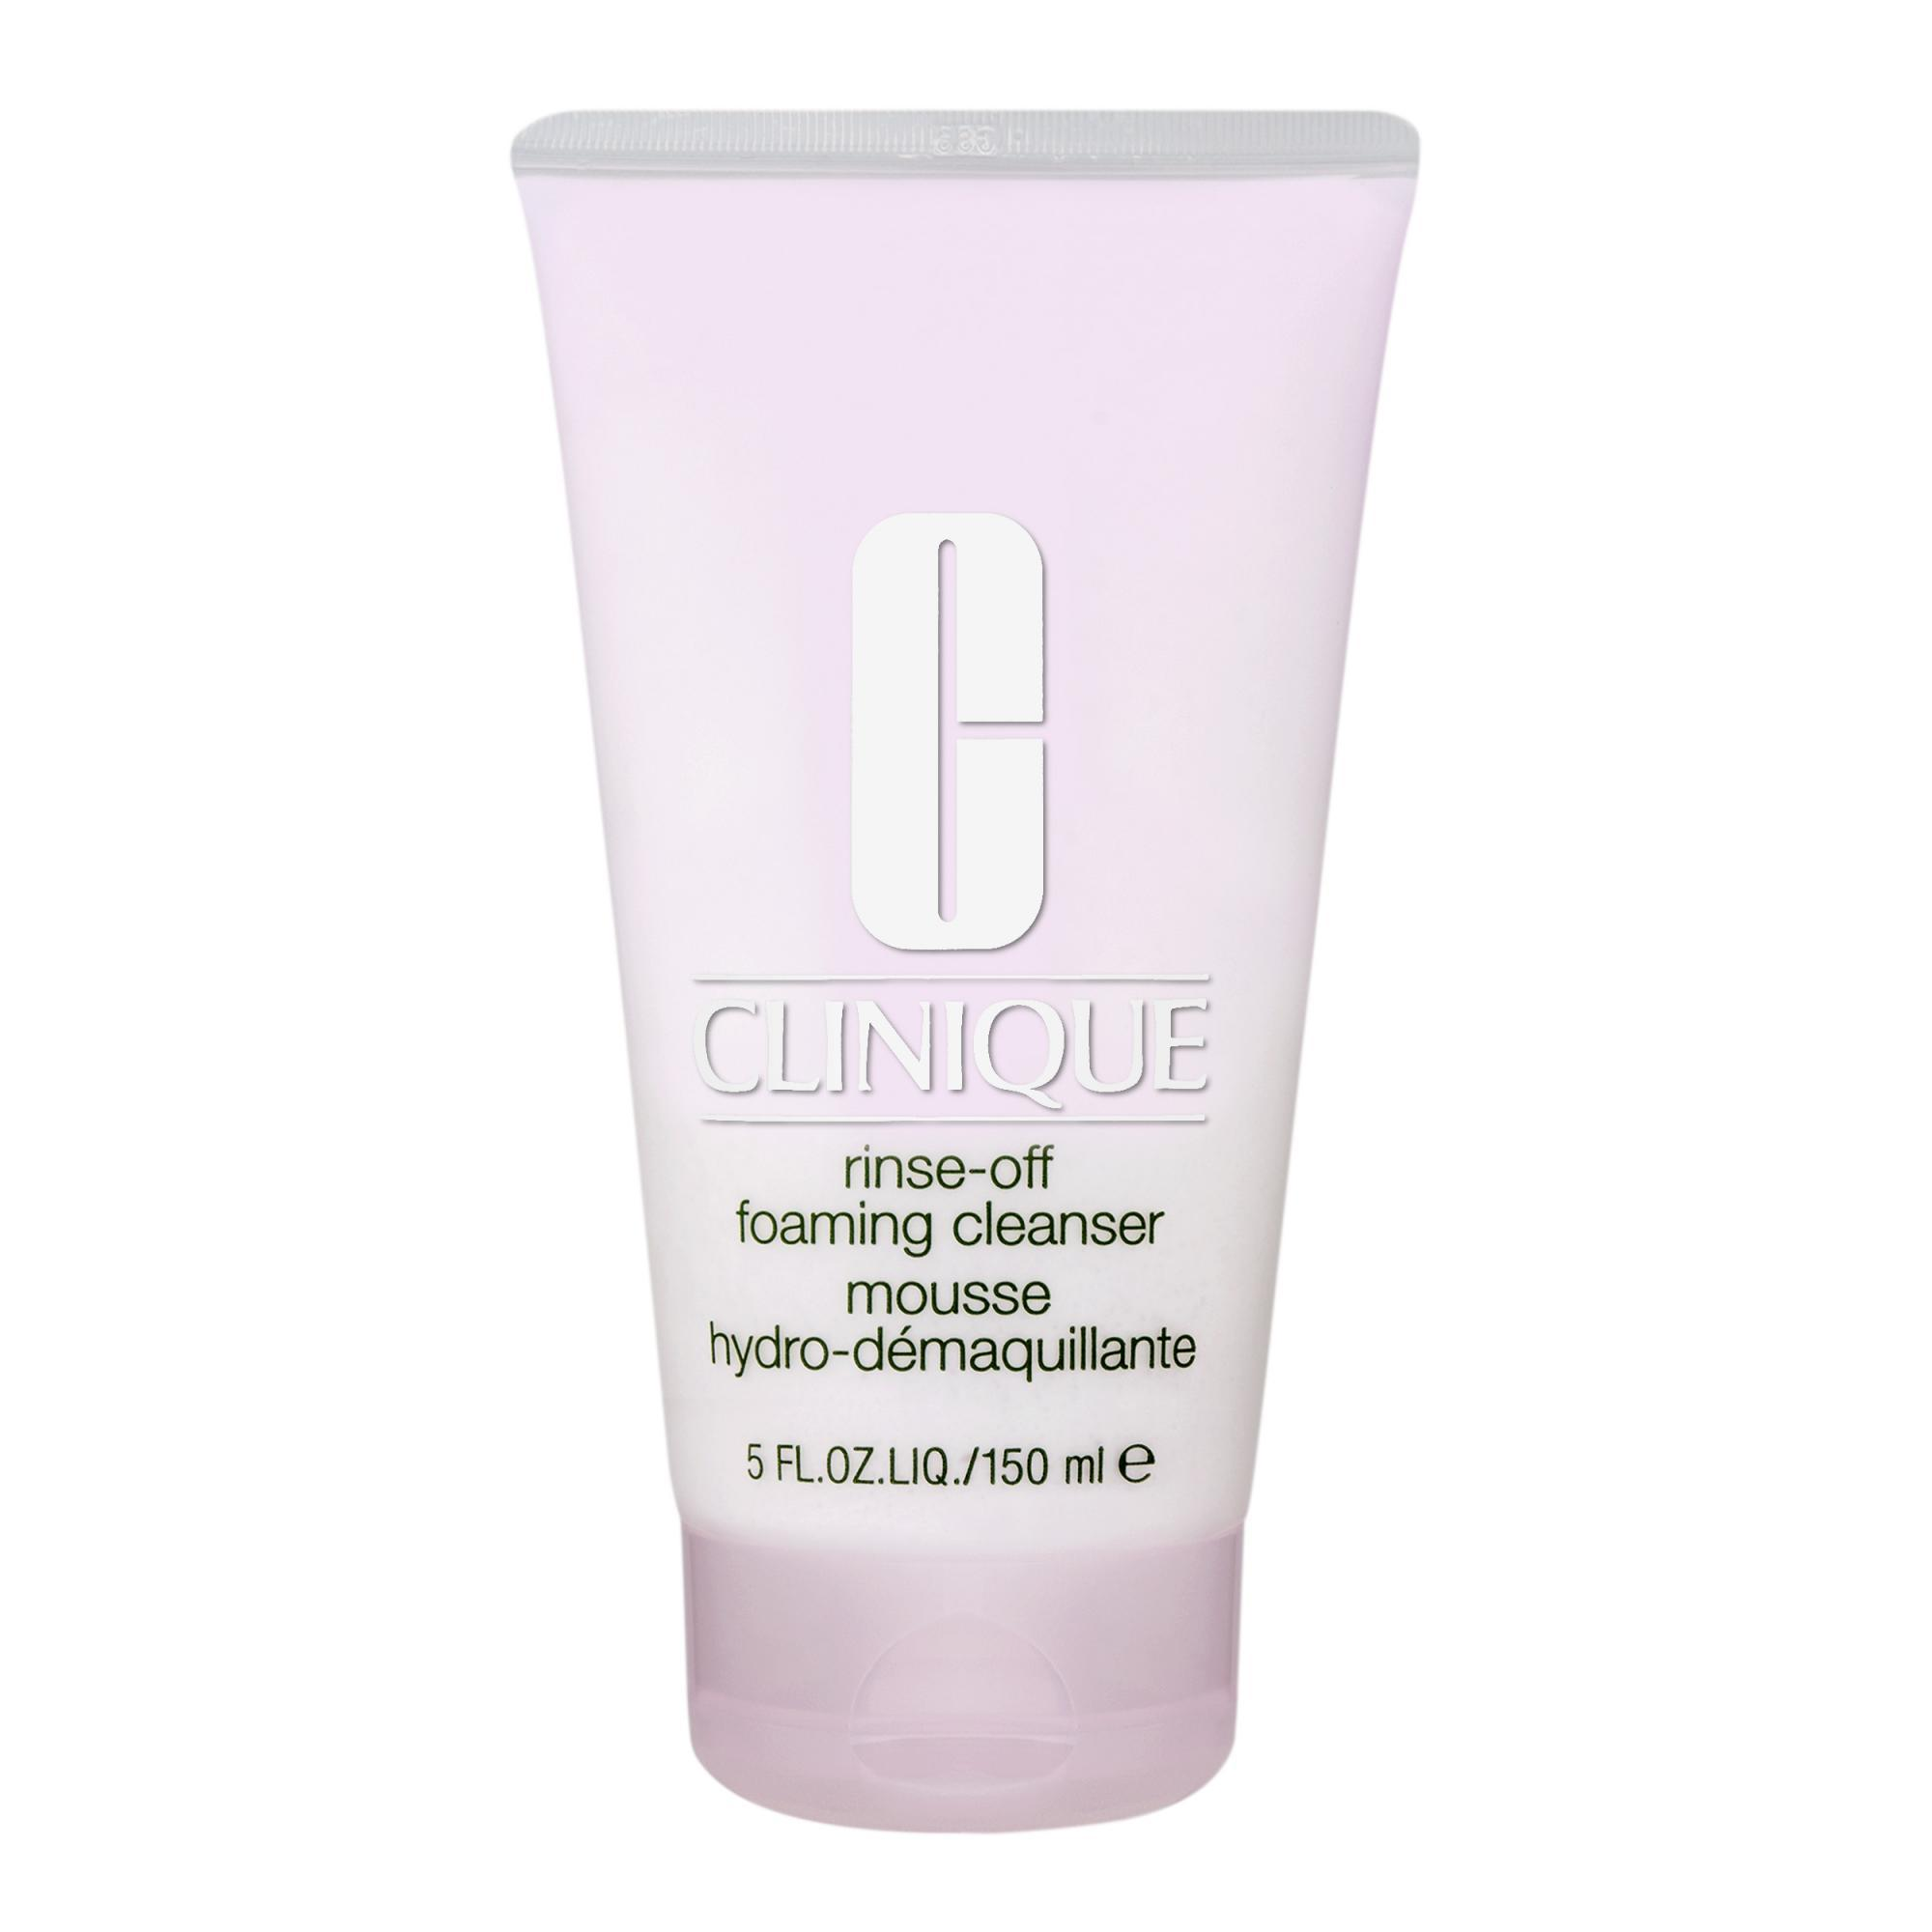 Clinique Rinse Off Foaming Cleanser 150Ml 5Oz Intl Reviews